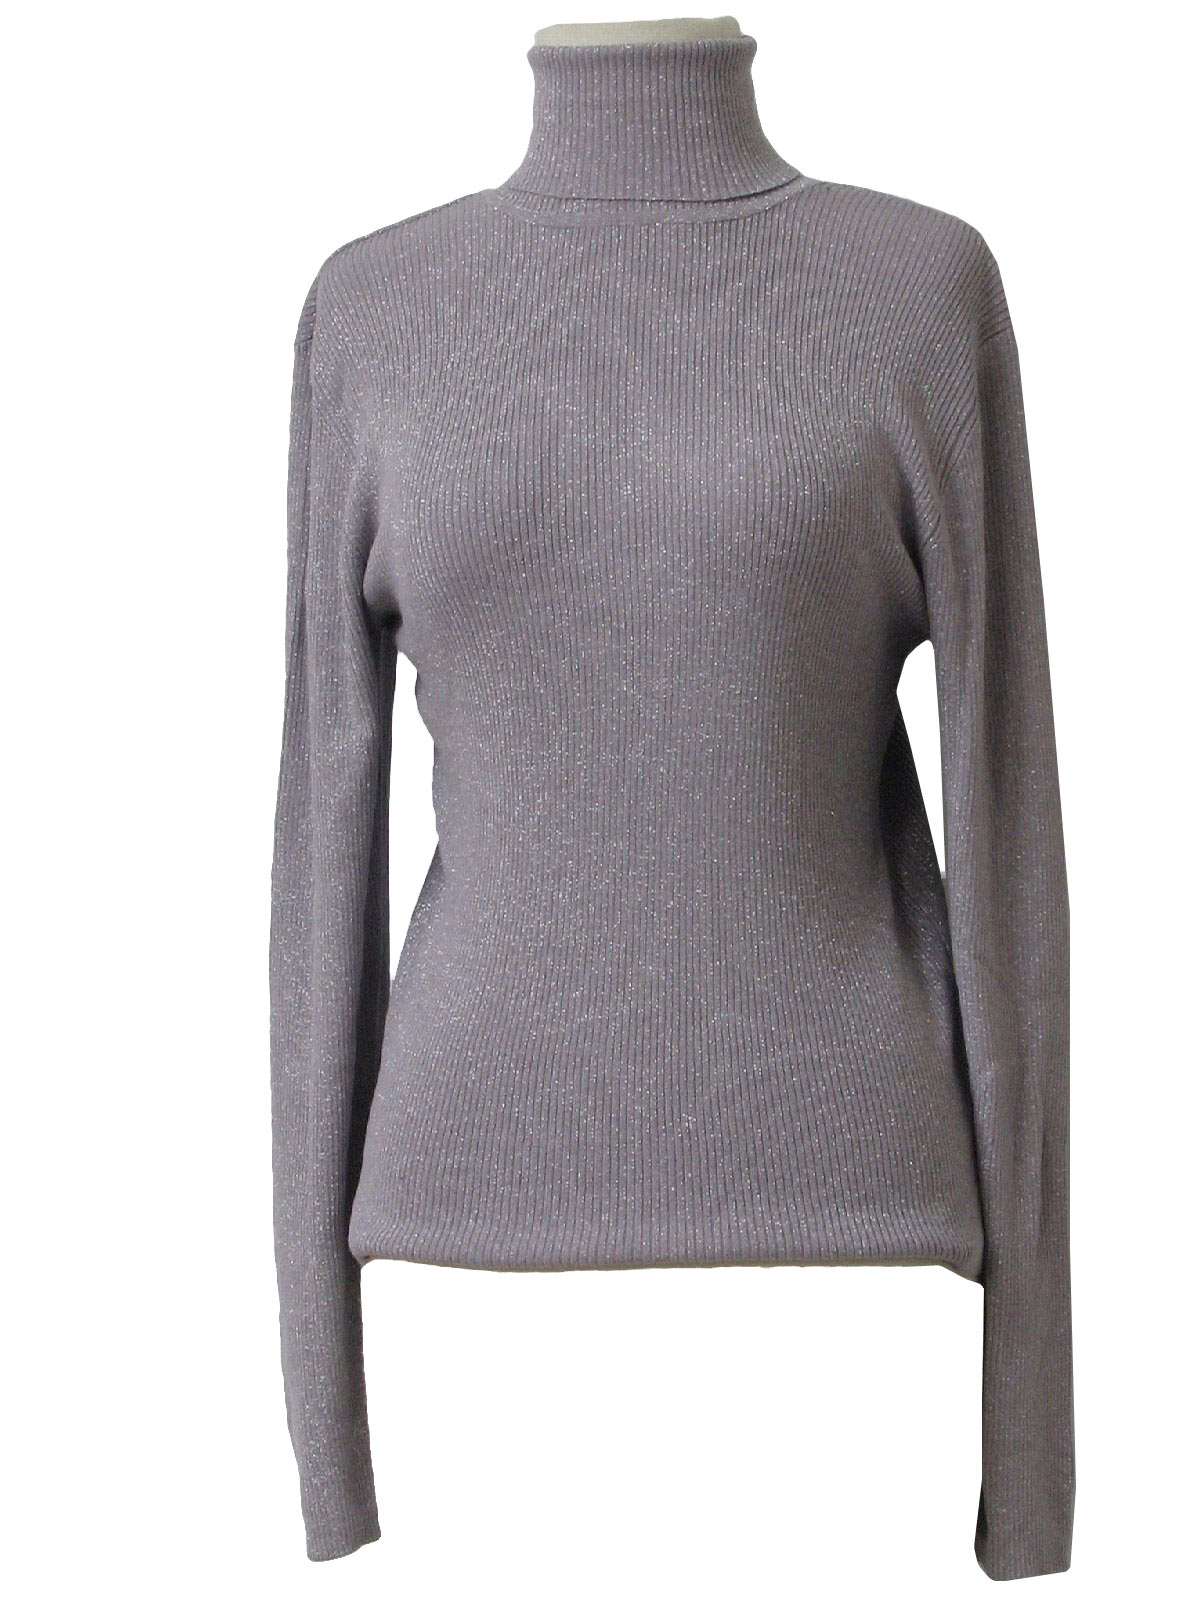 Womens Accessories - Turtleneck shirt to wear with your Ugly ...